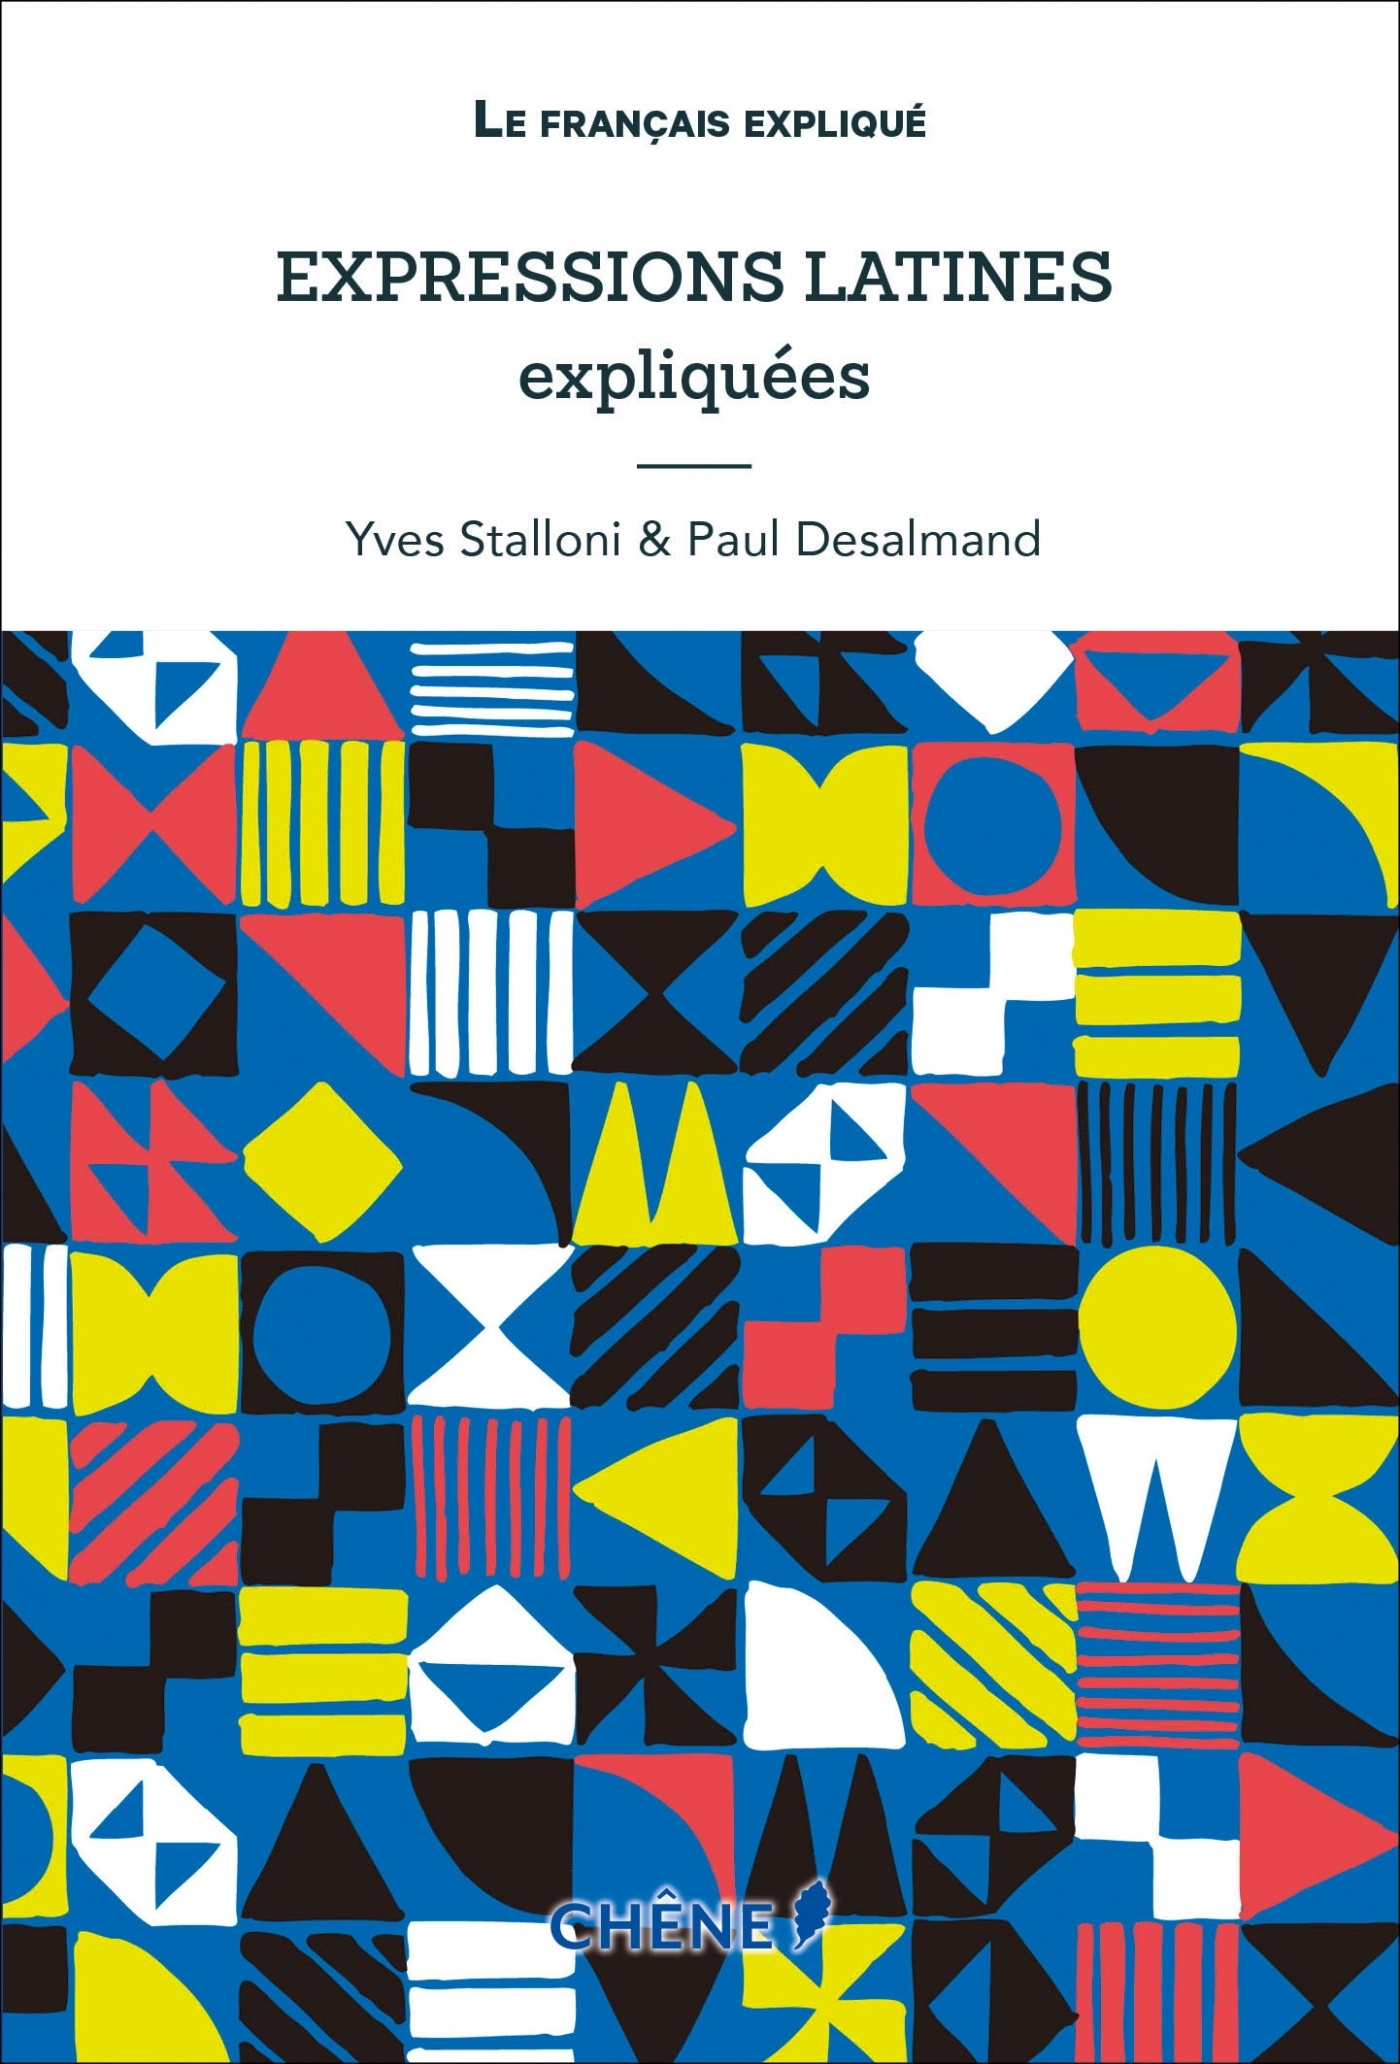 EXPRESSIONS LATINES EXPLIQUEES NED